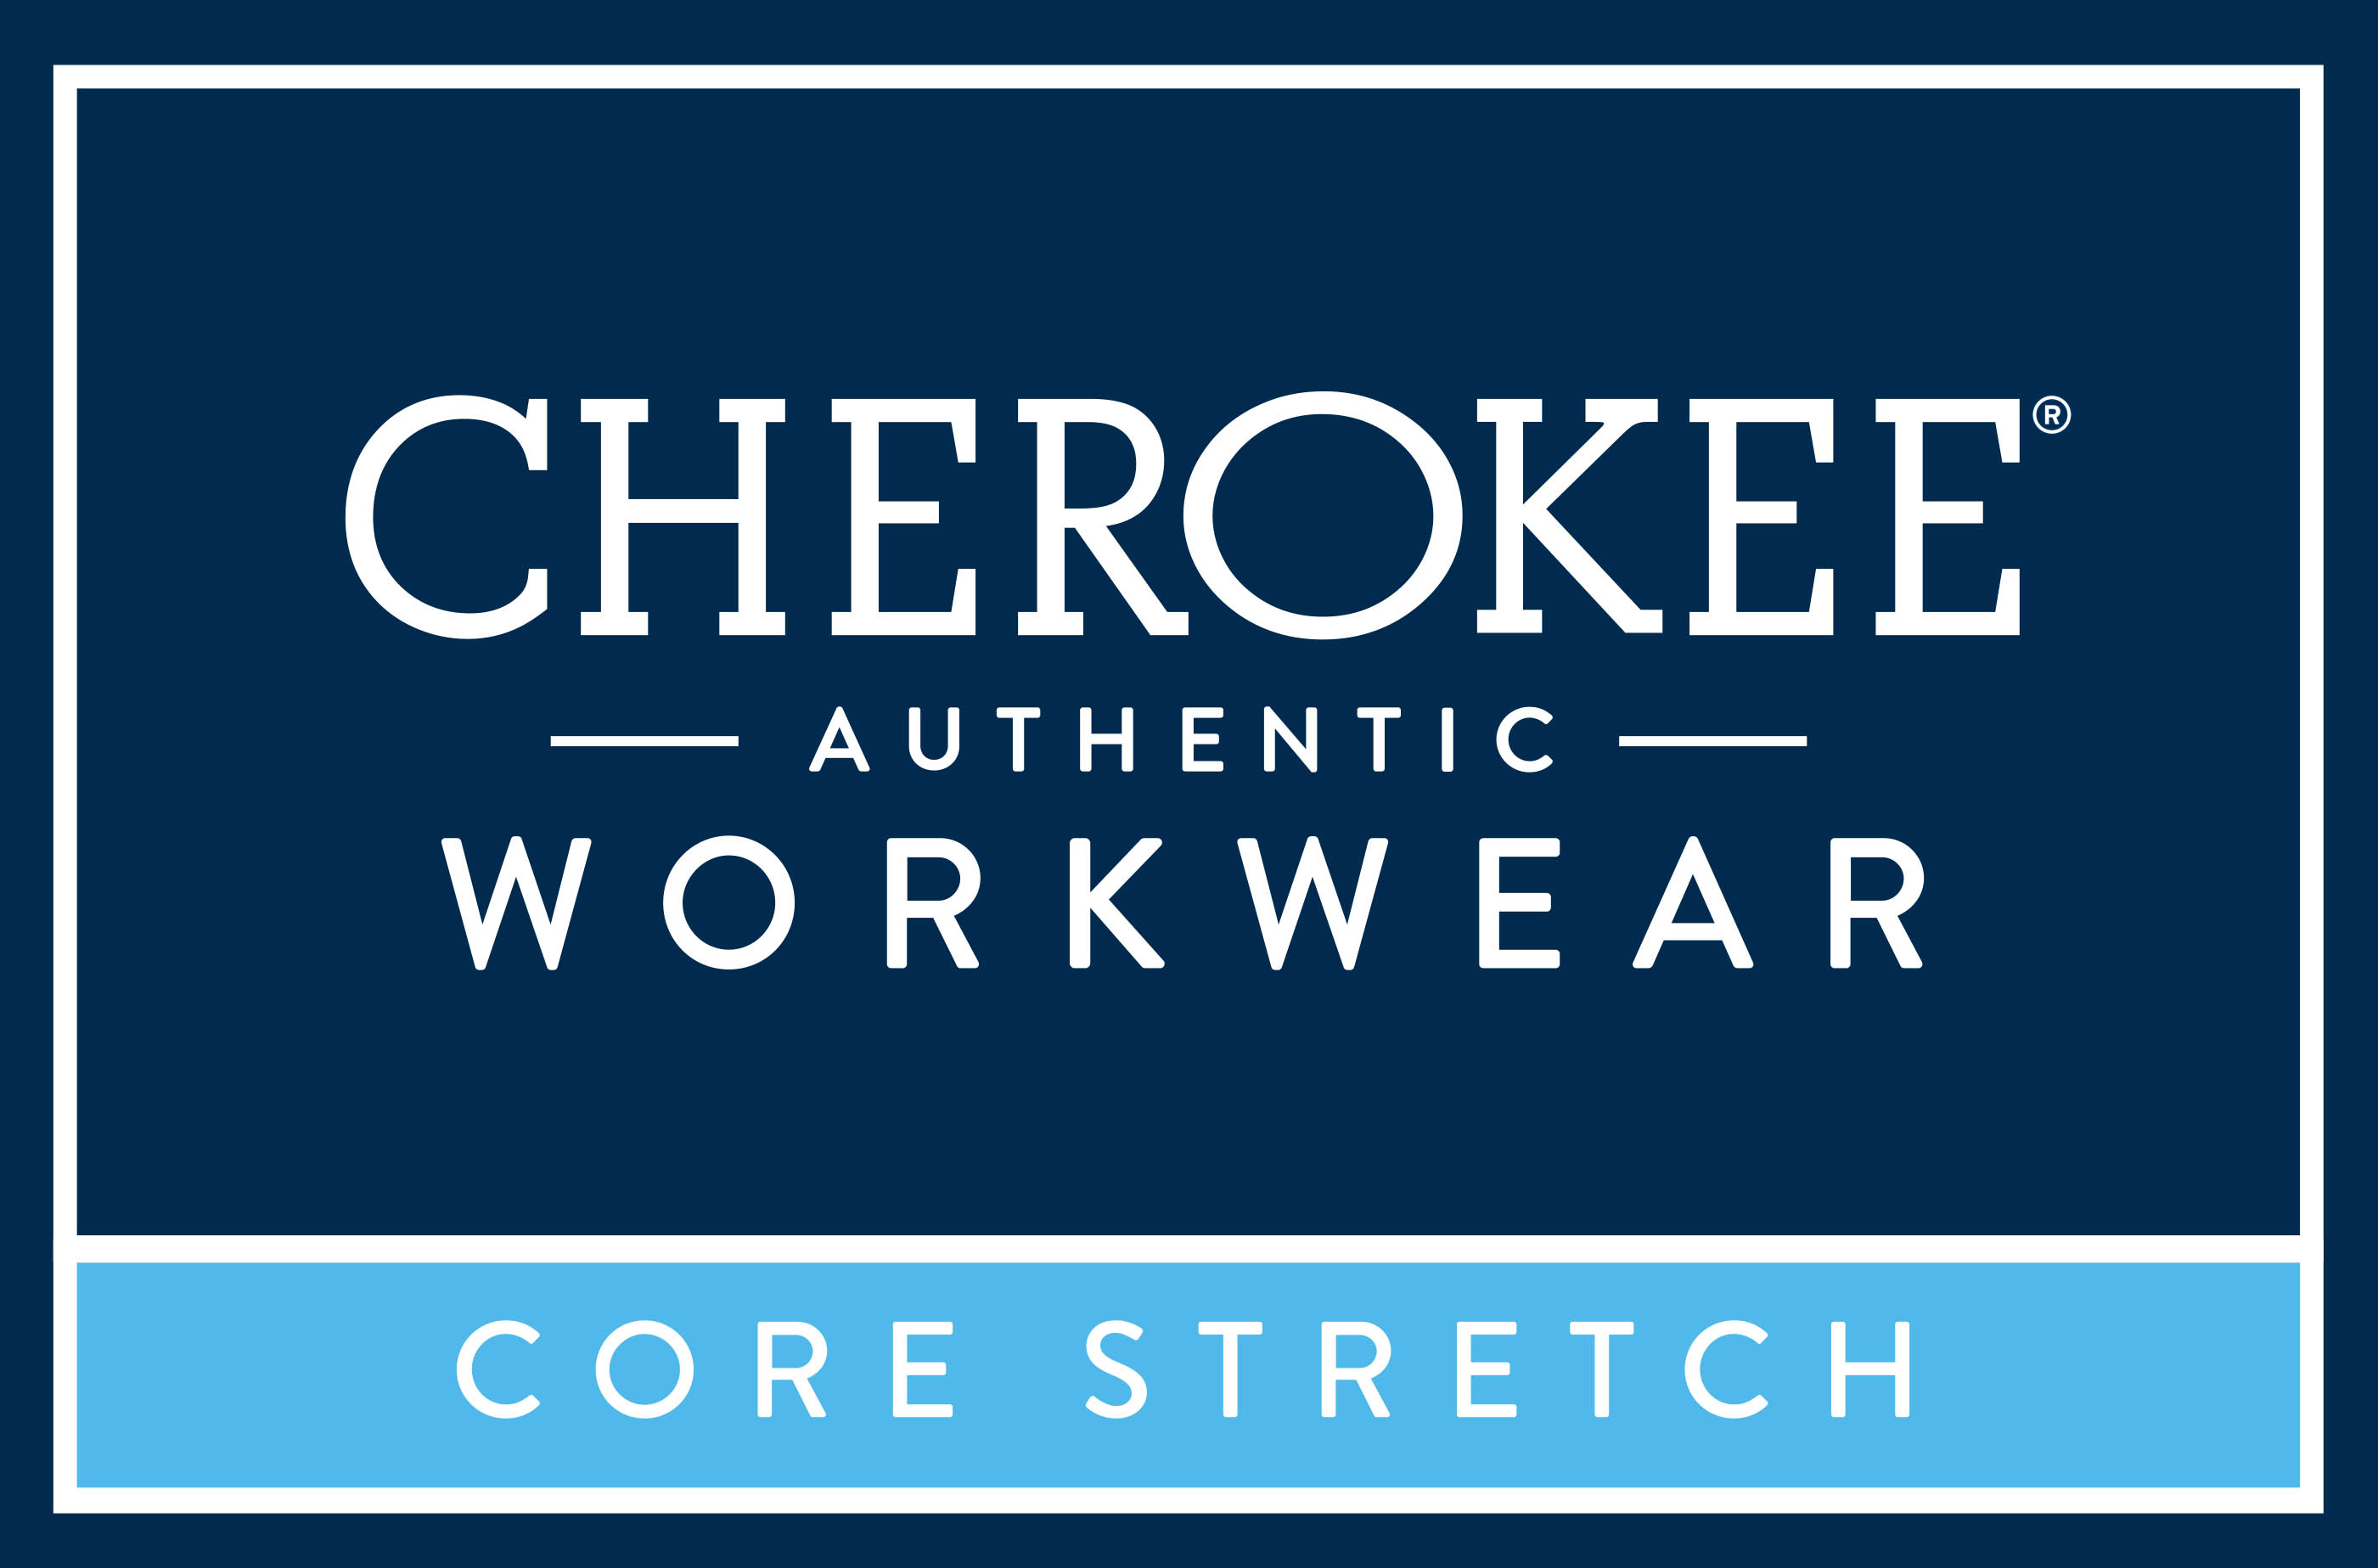 cherokee-workwear-core-stretch-logo.jpg